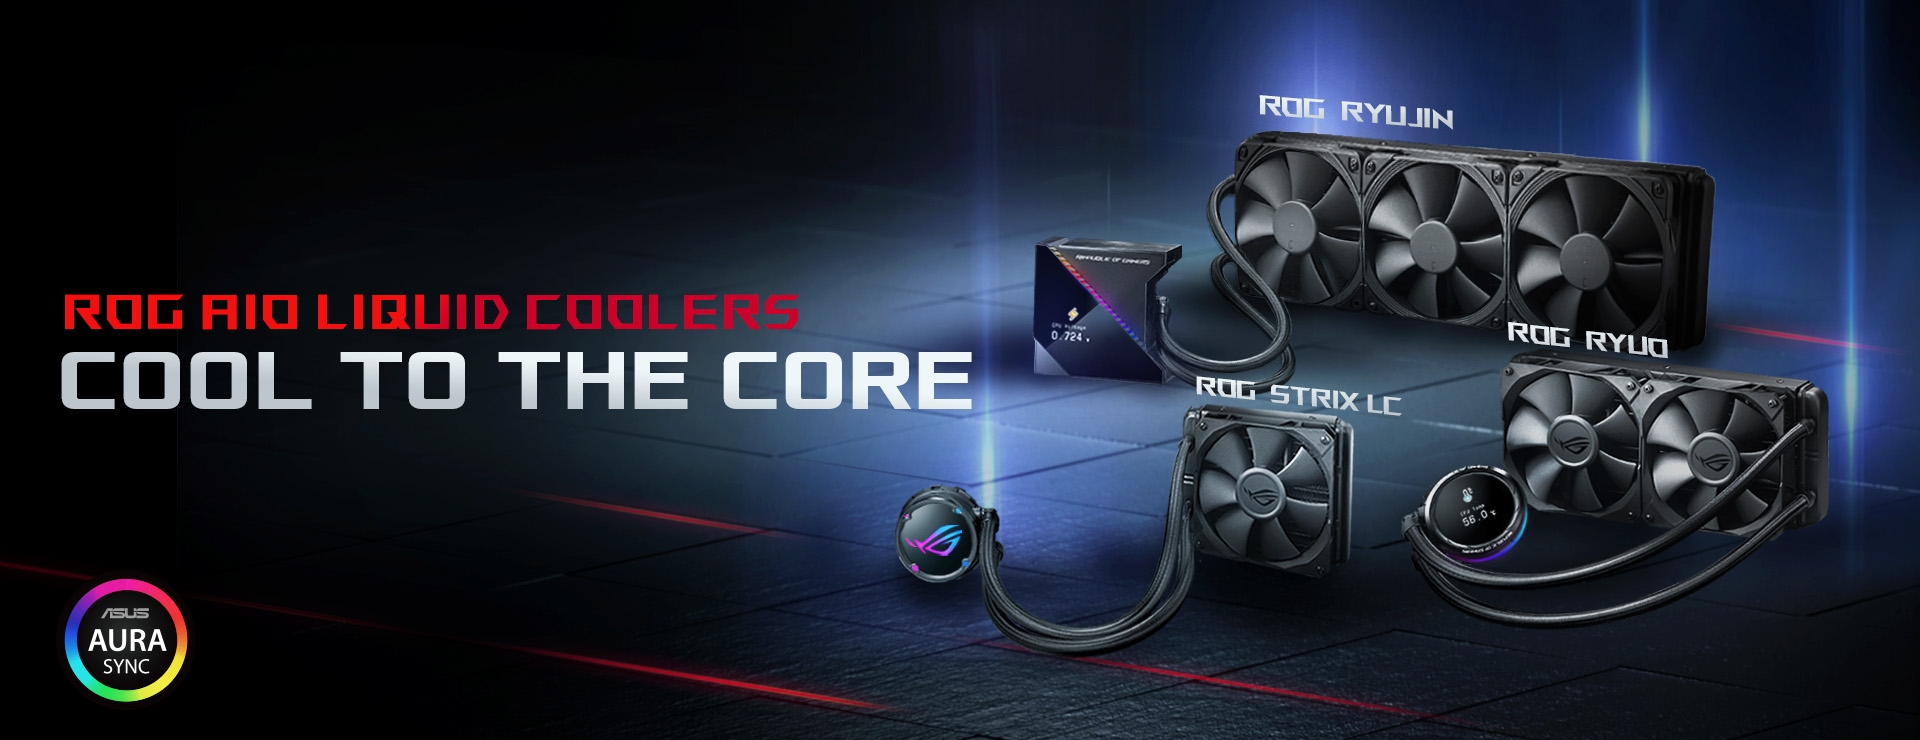 ROG AIO Liquid Coolers